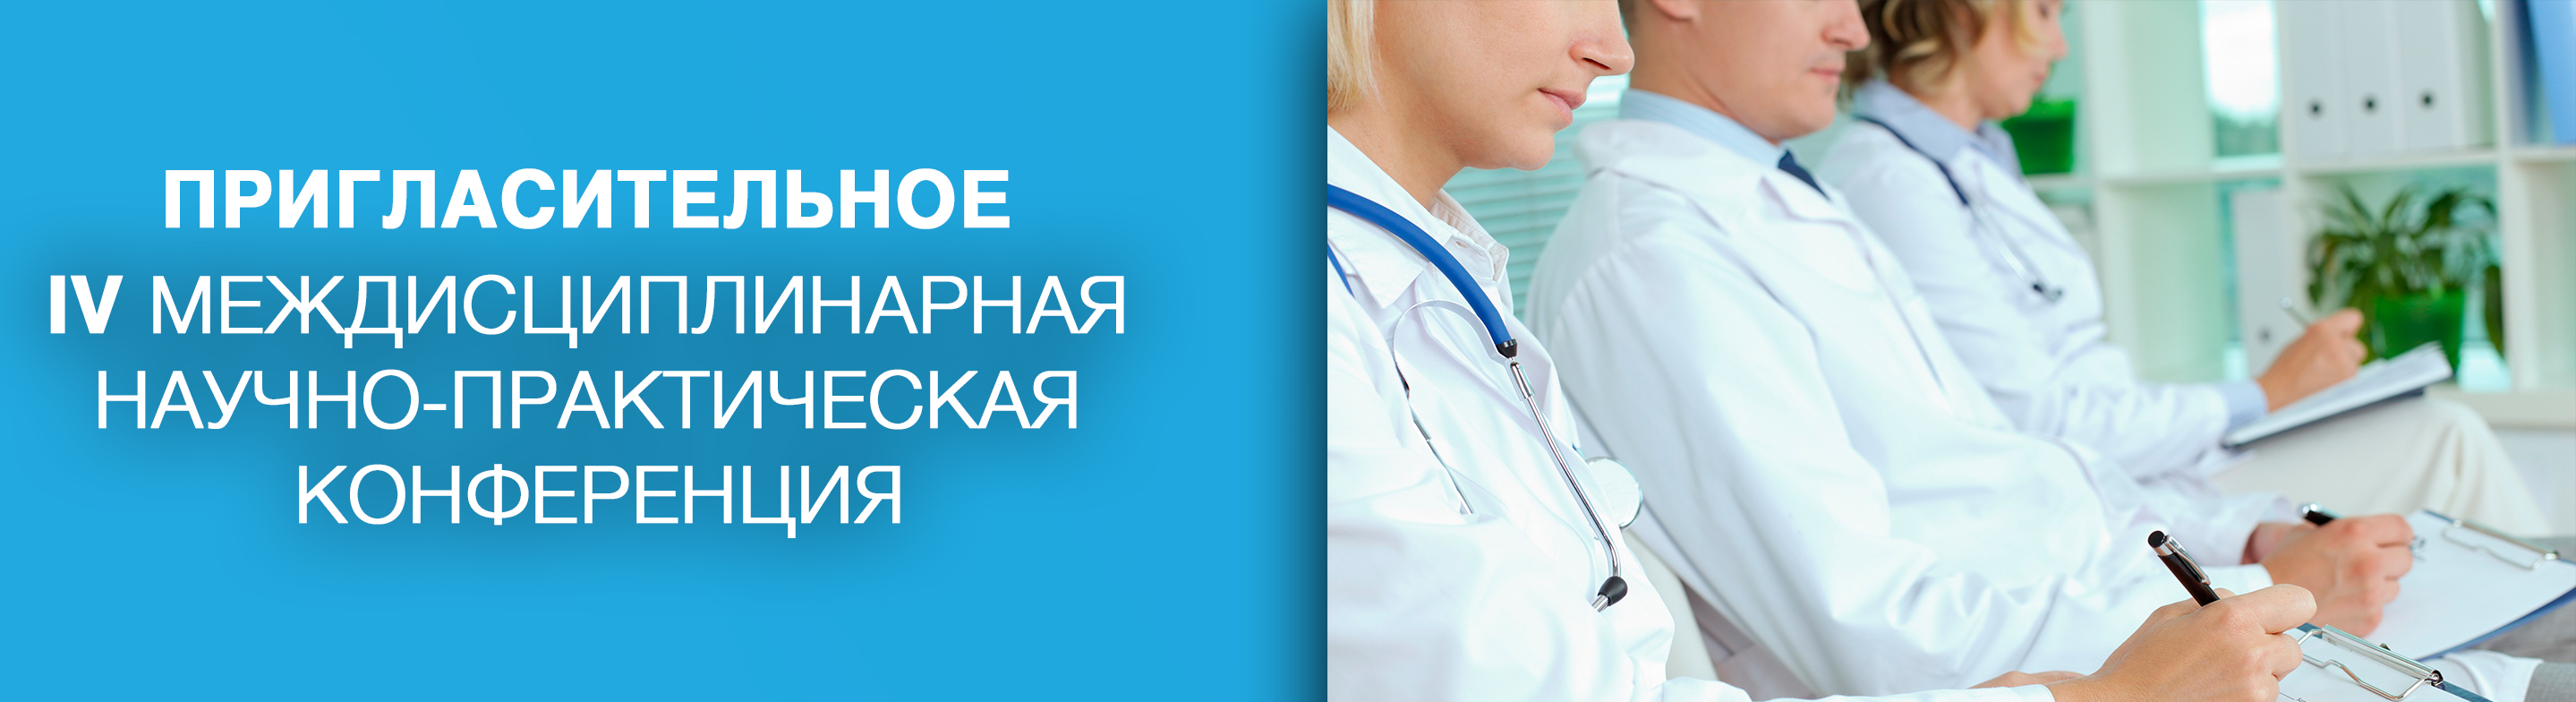 //nb-clinic.ru/wp-content/uploads/2018/01/IV.jpg